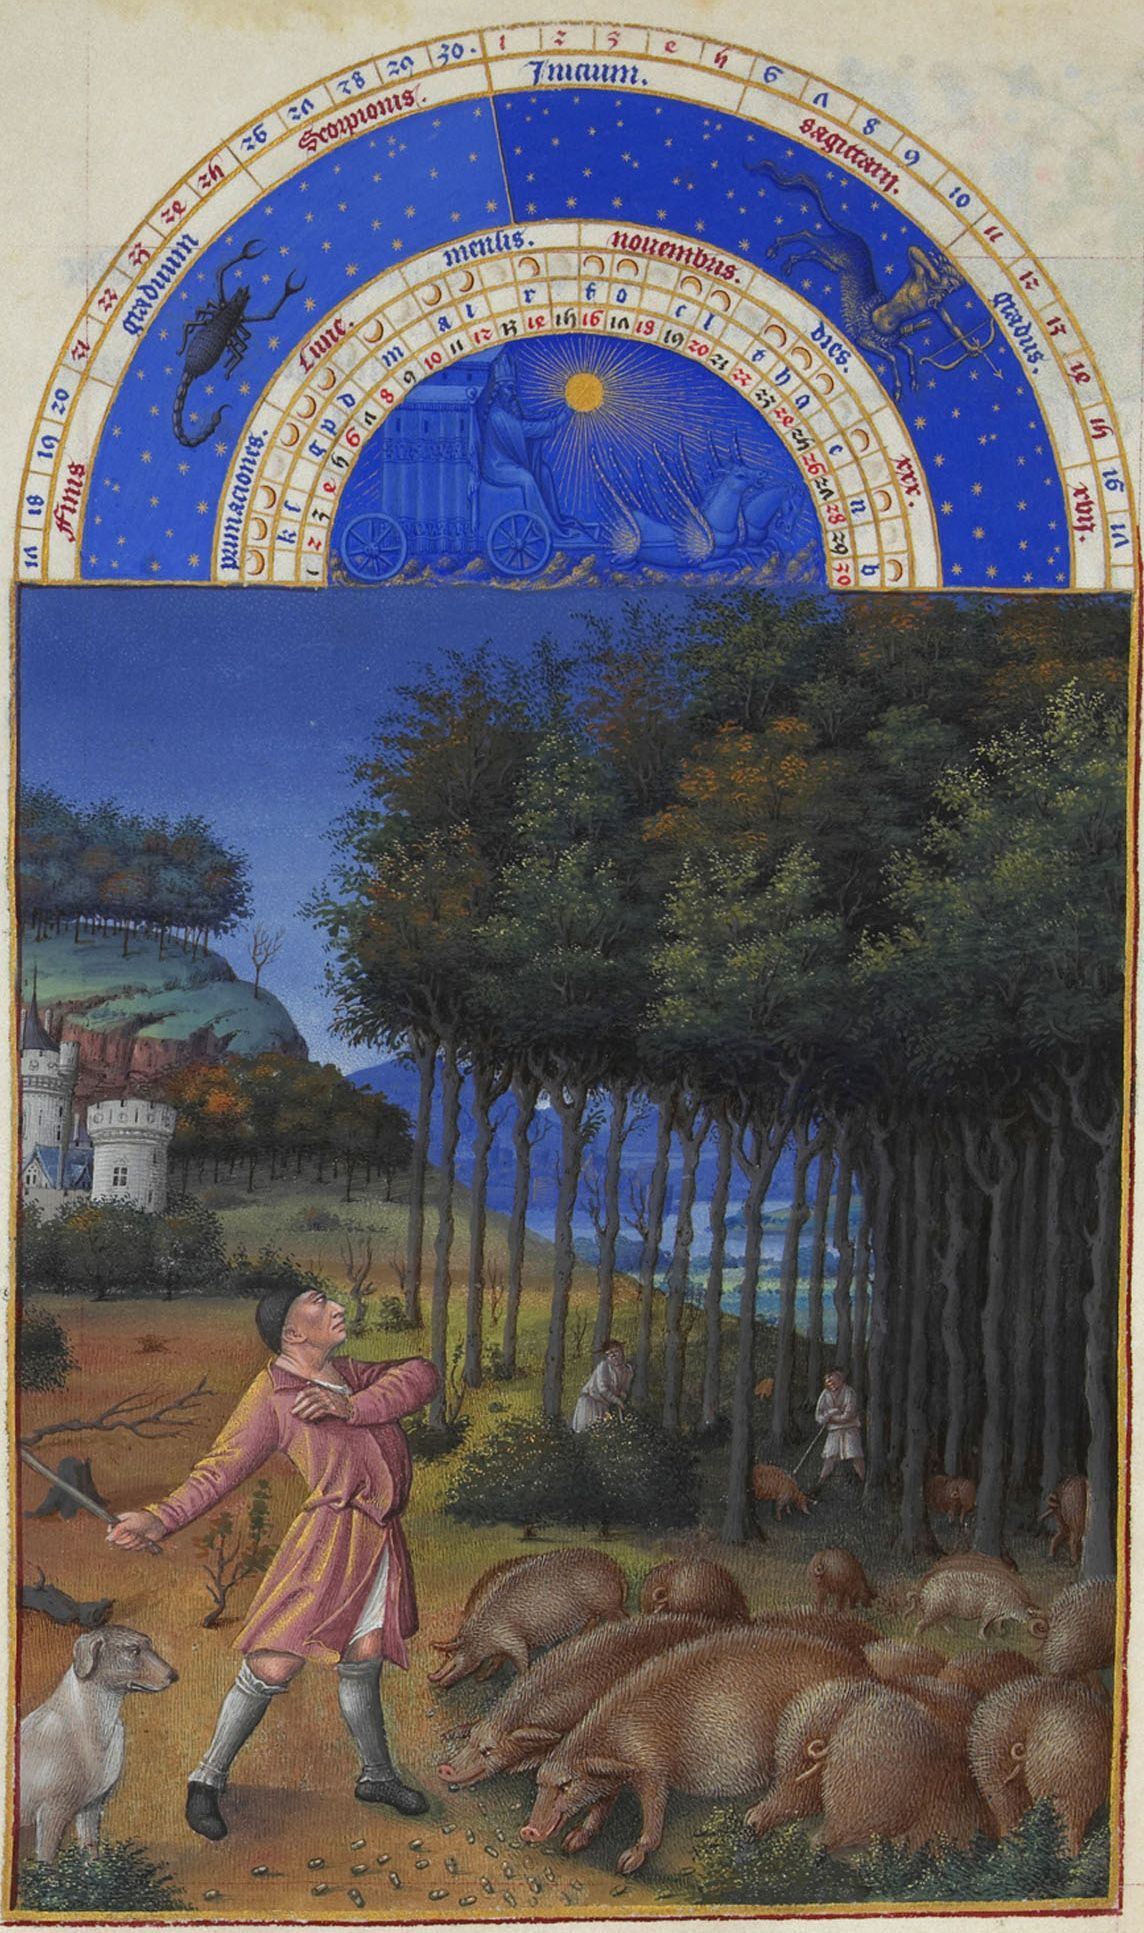 «November» : Très Riches Heures du Duc de Berry. The major part of the miniatures is done by the Limbourg brothers - Herman, Paul, and Johan. Who else participated in the miniatures creation after them was not clear for quite some time. Then certain details discovered let the researchers to assert that the name of the other master is Jean Colombe, who possibly continued the work after the Limbourgs in the end of the 15th century.